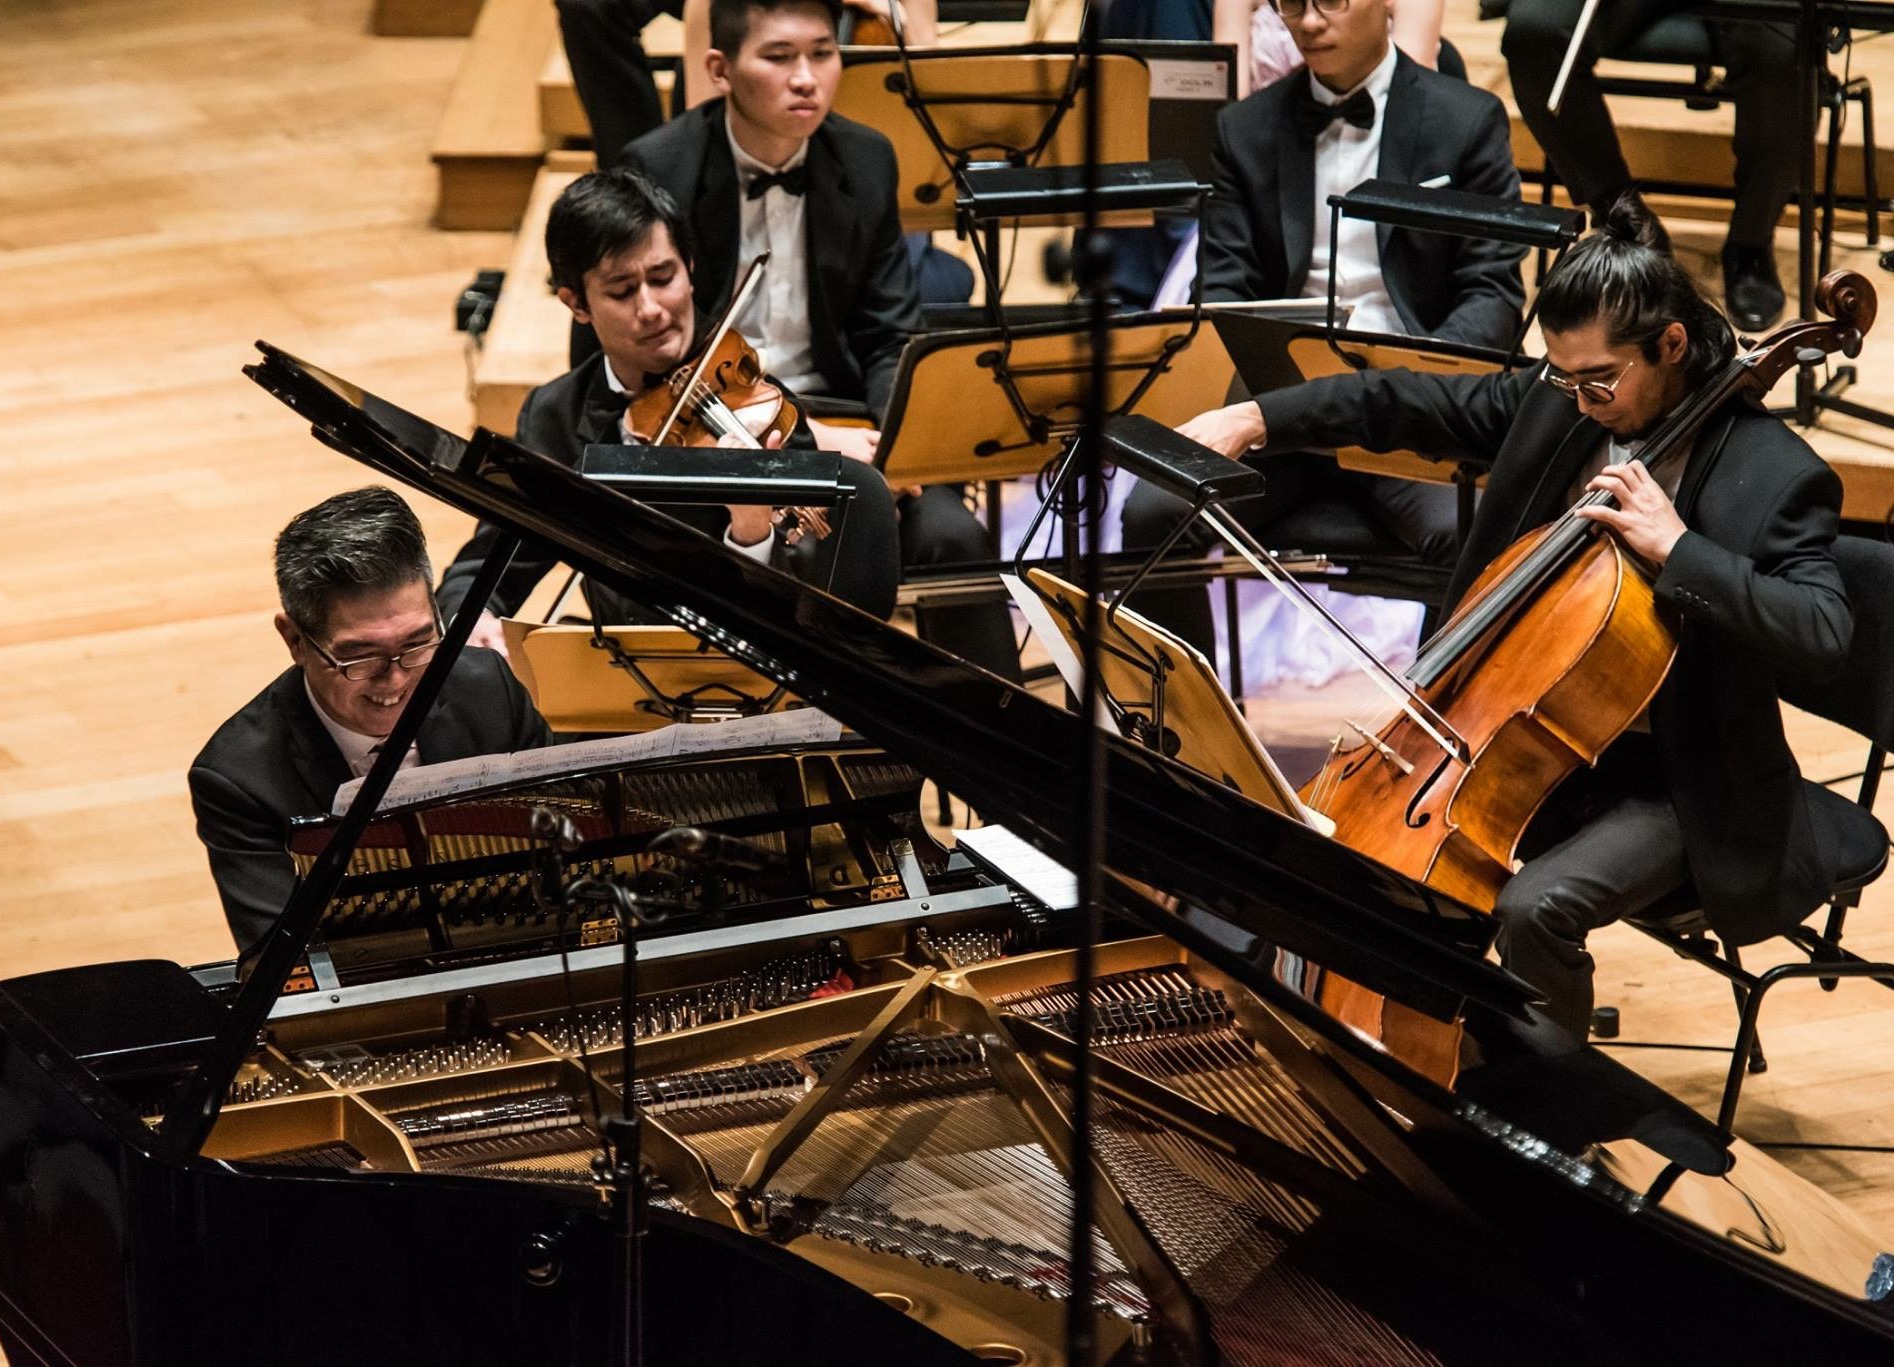 Jamshid with Assoc Prof Albert Tiu (at piano) in a 2018 performance of Tchaikovsky's Piano Concerto No. 2.